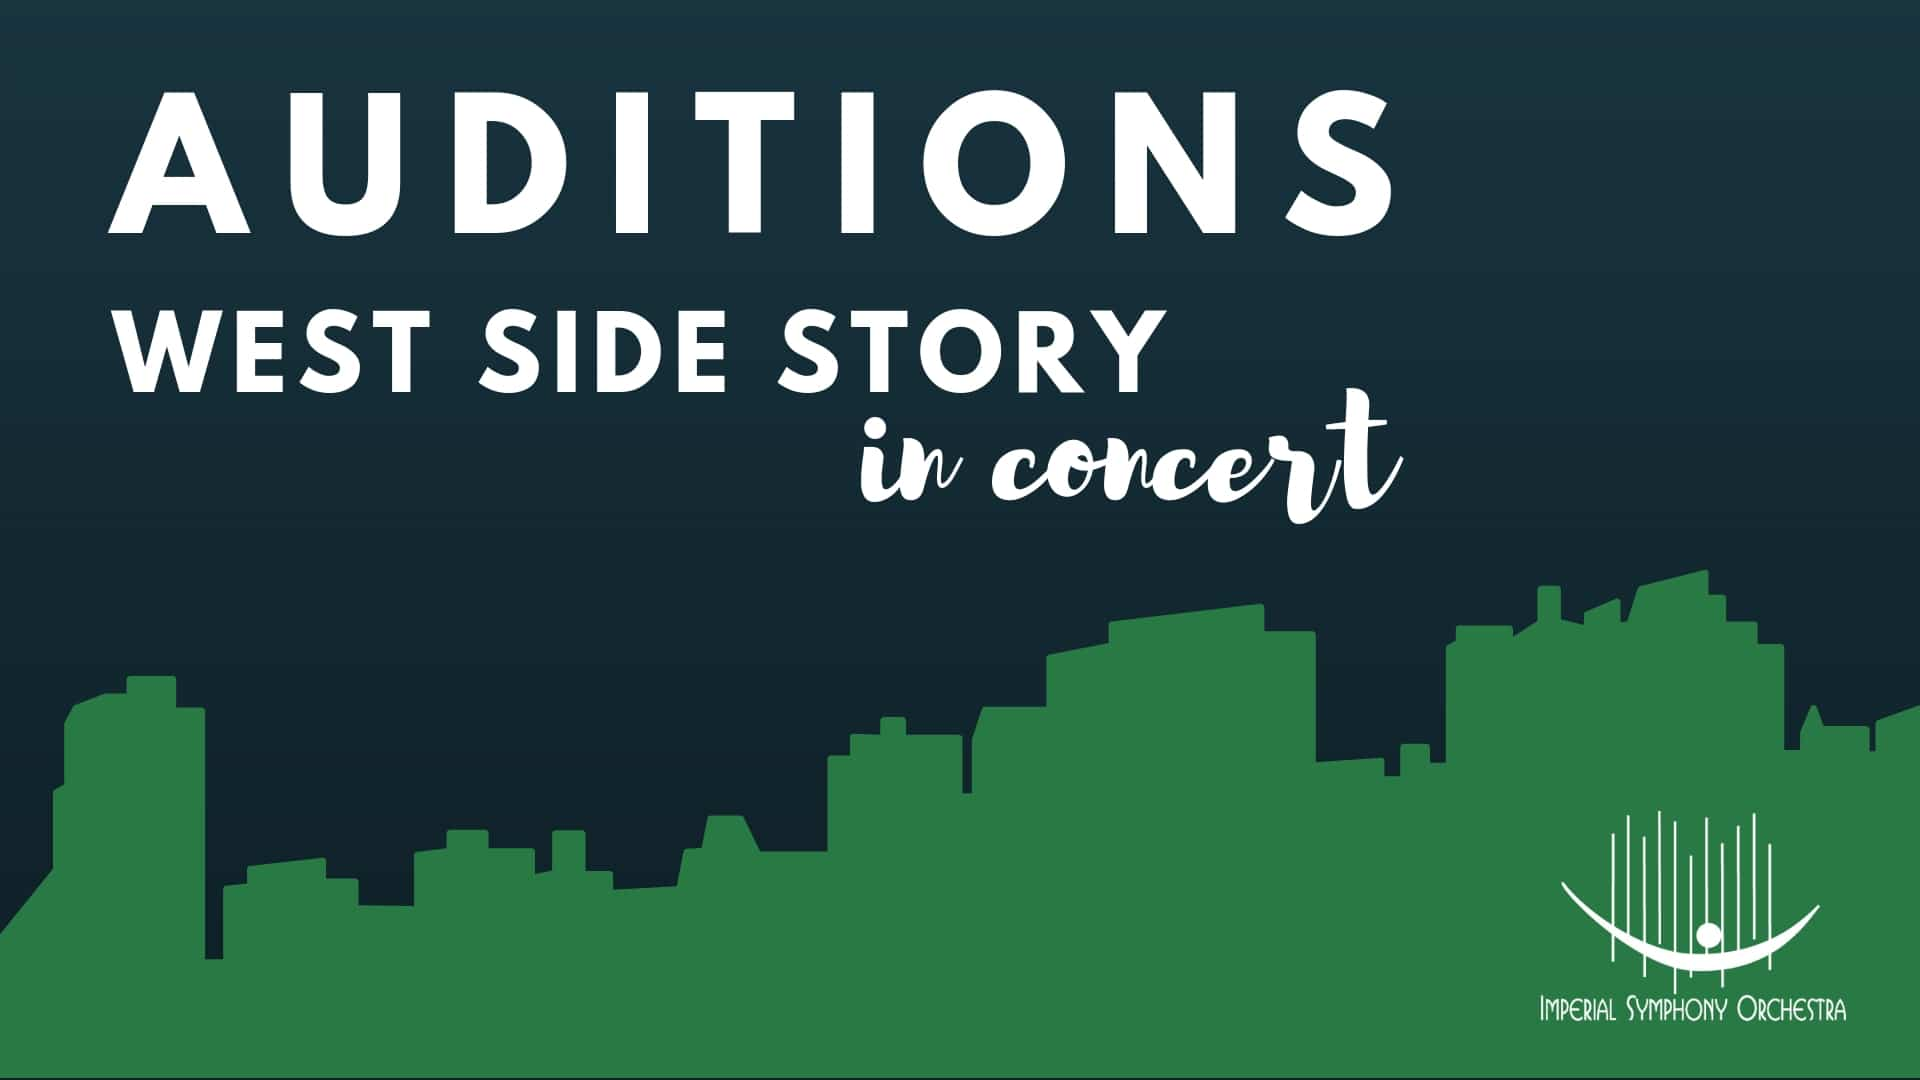 AUDITIONS: West Side Story in Concert